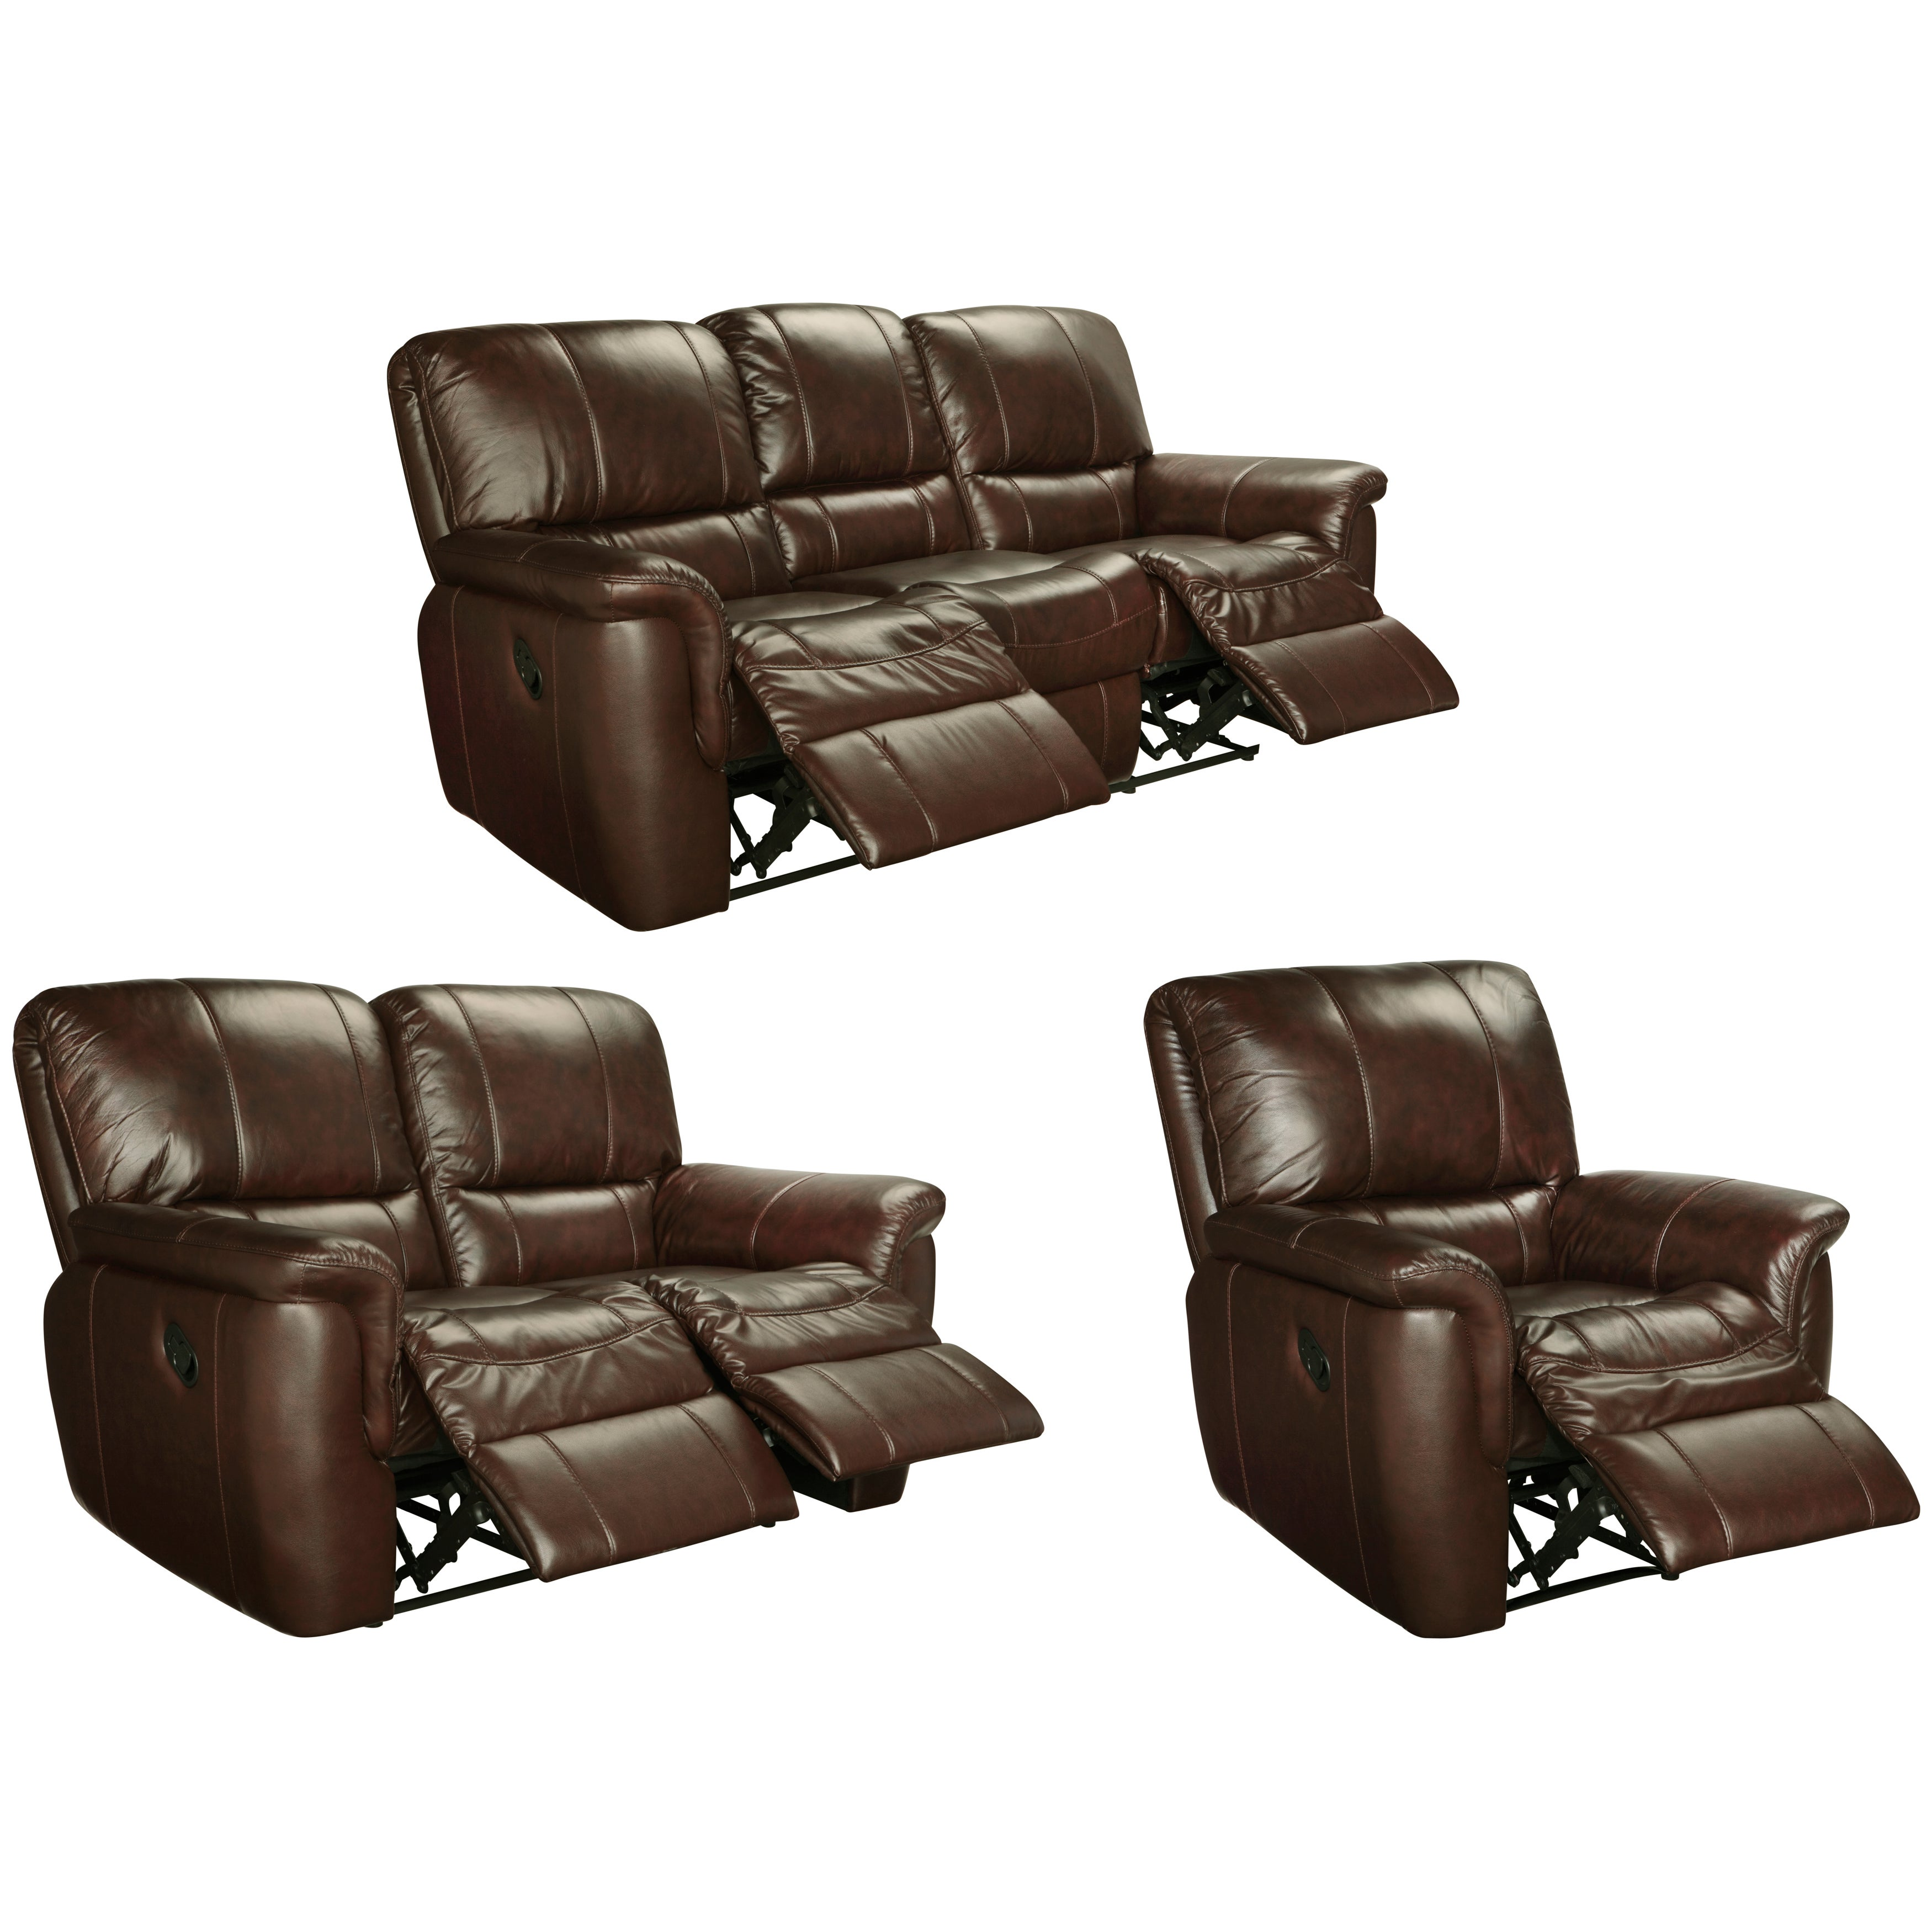 Ethan Chestnut Brown Leather Reclining Sofa Loveseat And Recliner On Free Shipping Today 8089859